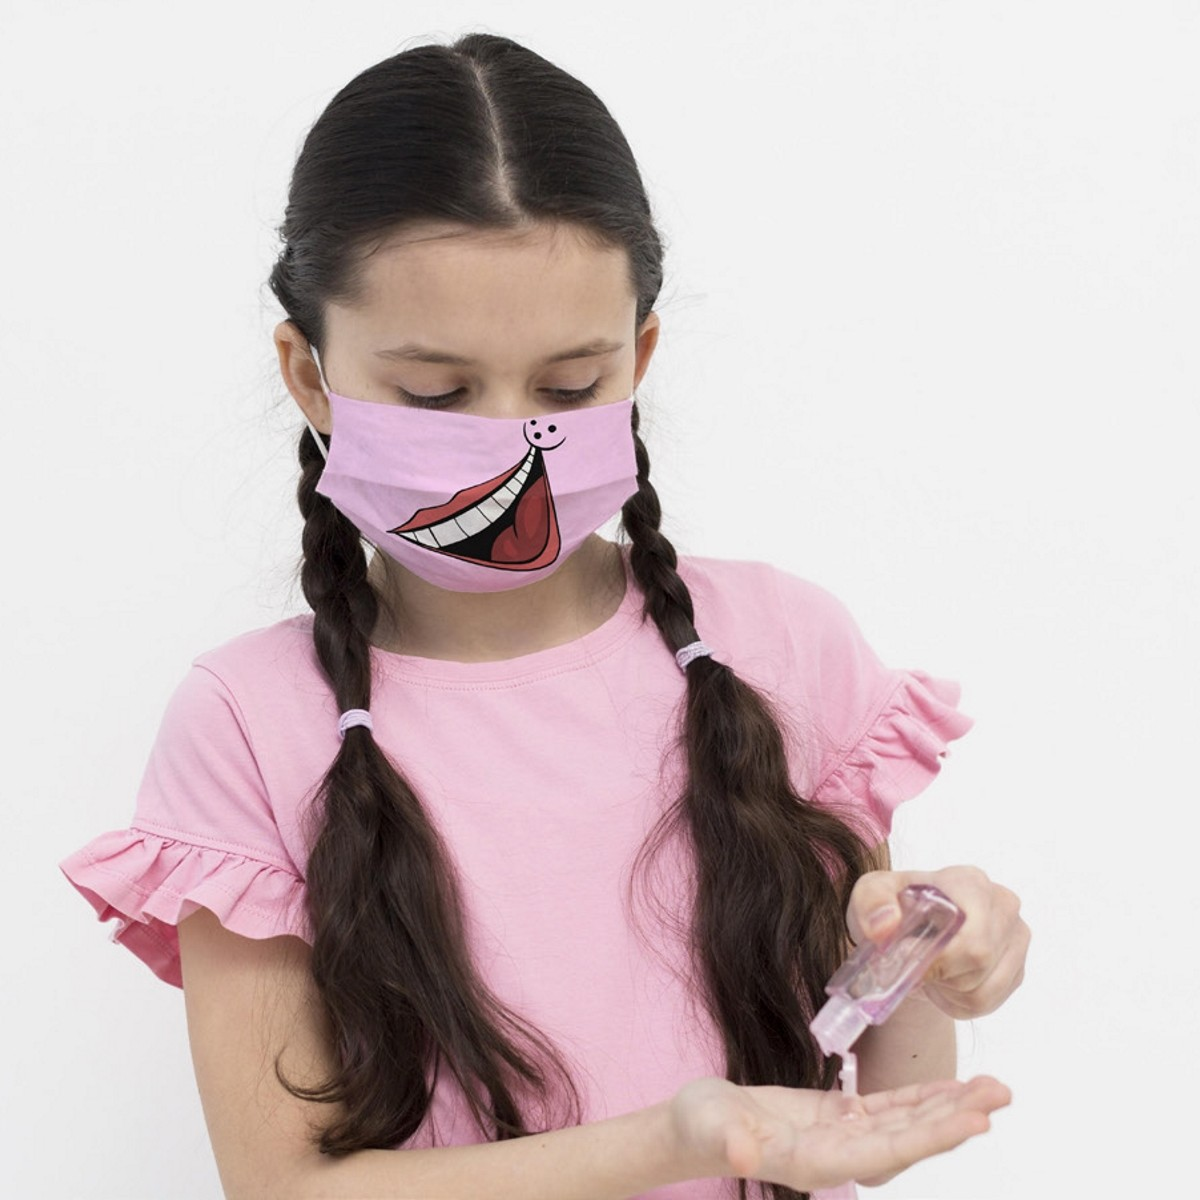 Young girl wearing Big Smile certified child face mask